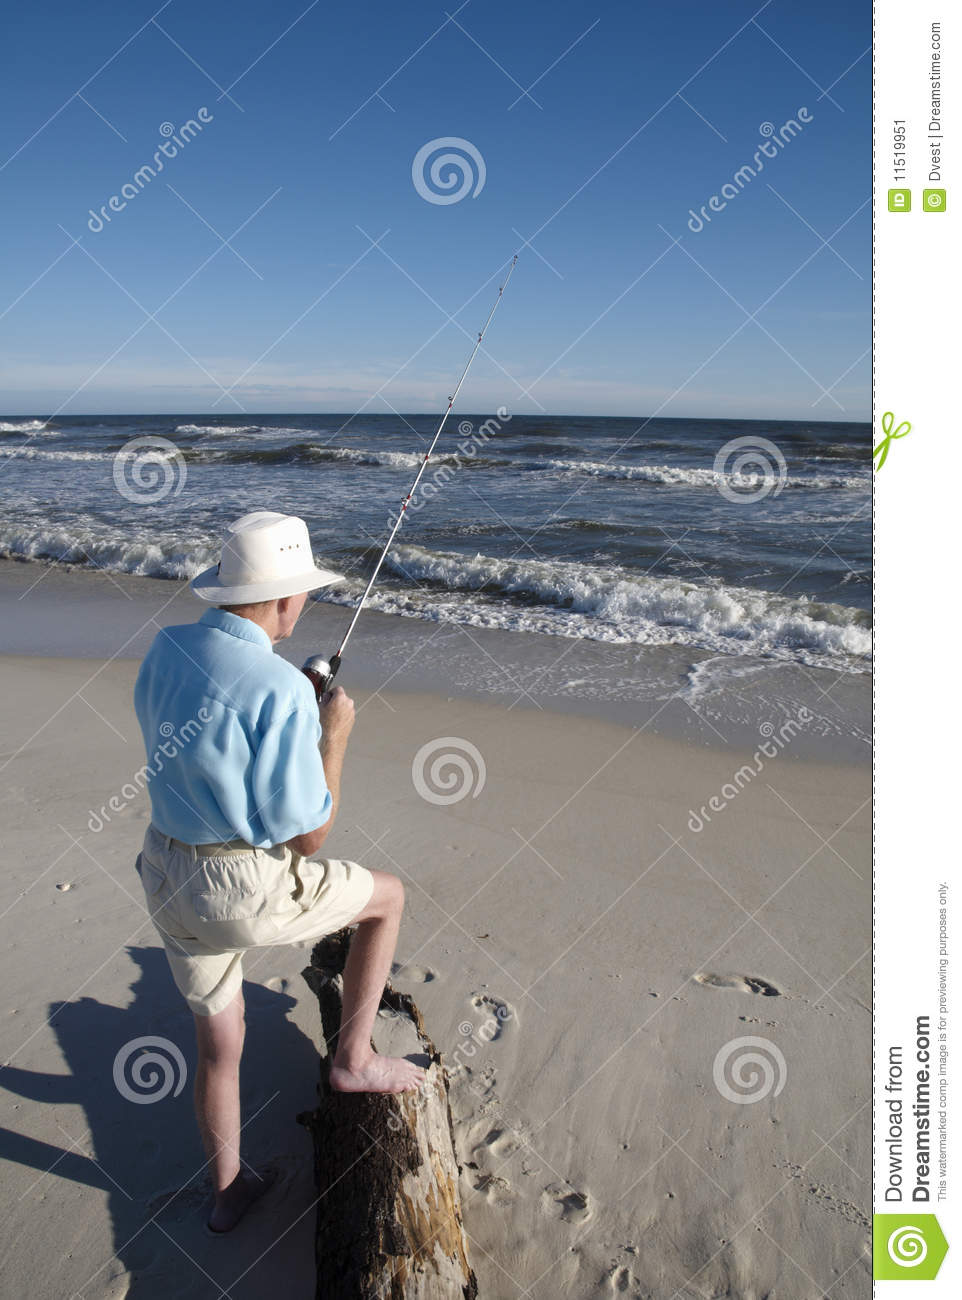 Fishing trip stock image image 11519951 for Florida fishing license for seniors